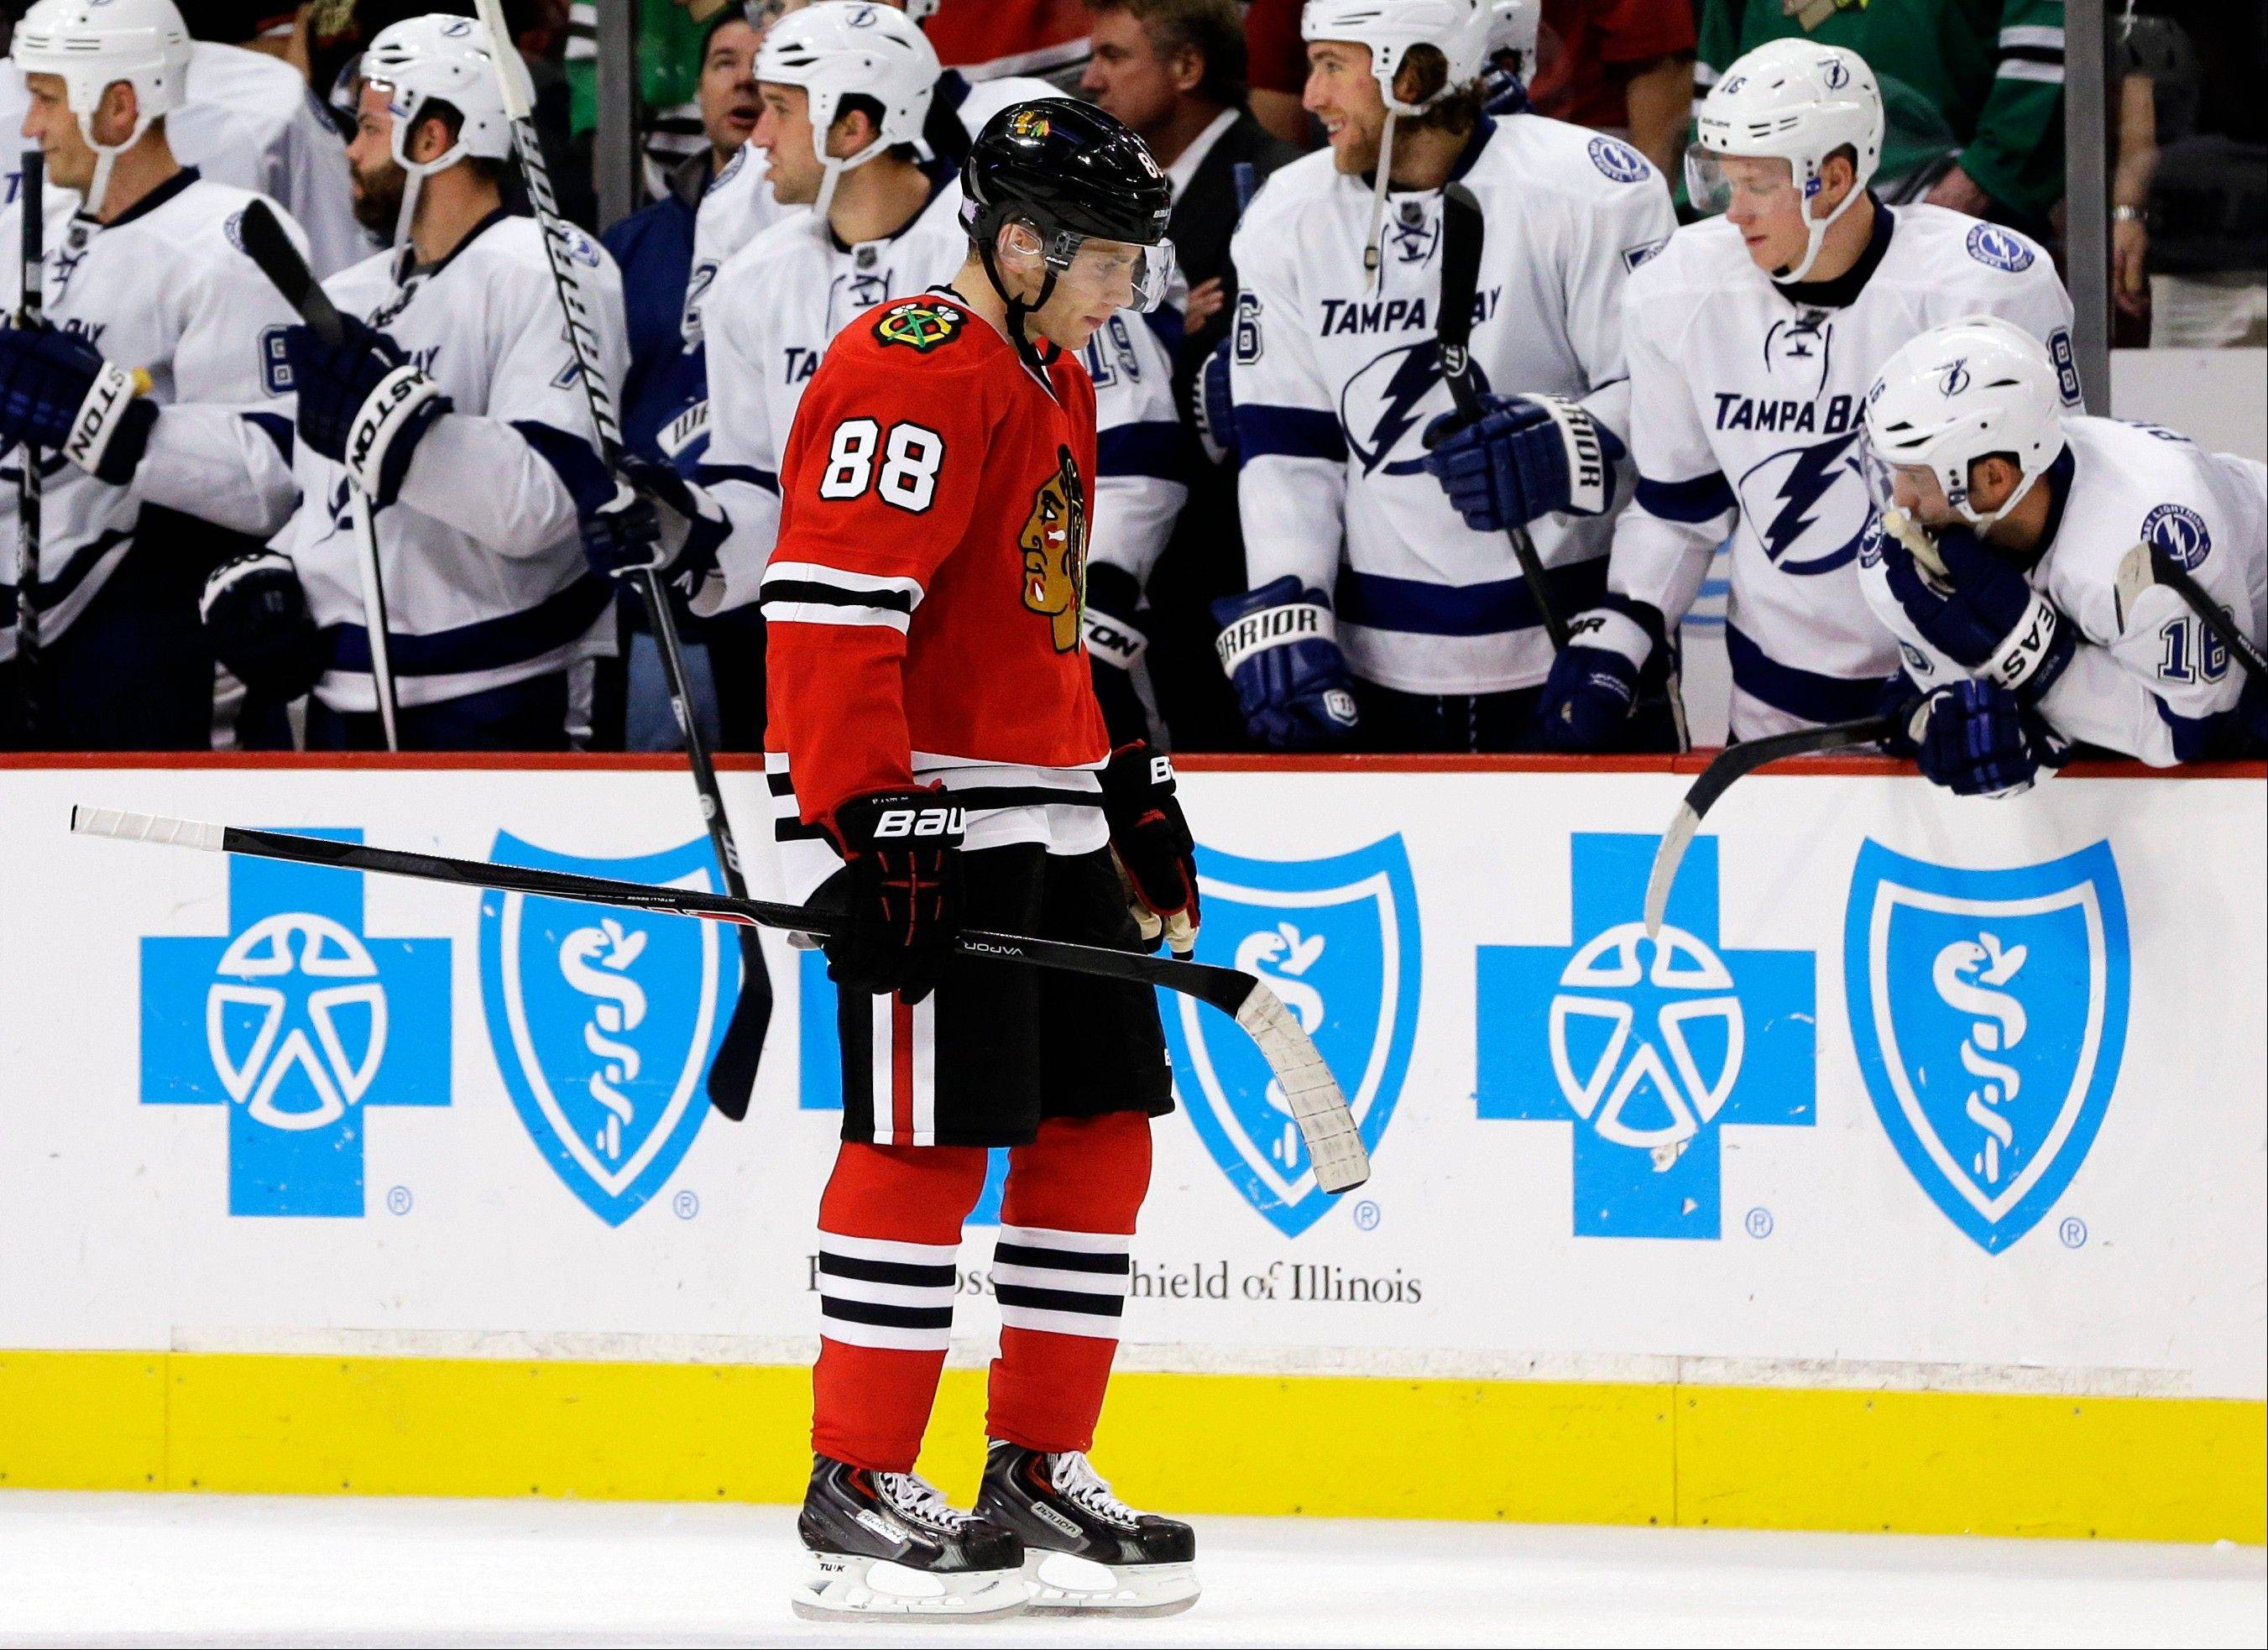 Chicago Blackhawks' Patrick Kane skates to bench after missing a shot against the Tampa Bay Lightning during the shootout of an NHL hockey game in Chicago, Saturday, Oct. 5, 2013. The Lightning won 3-2.